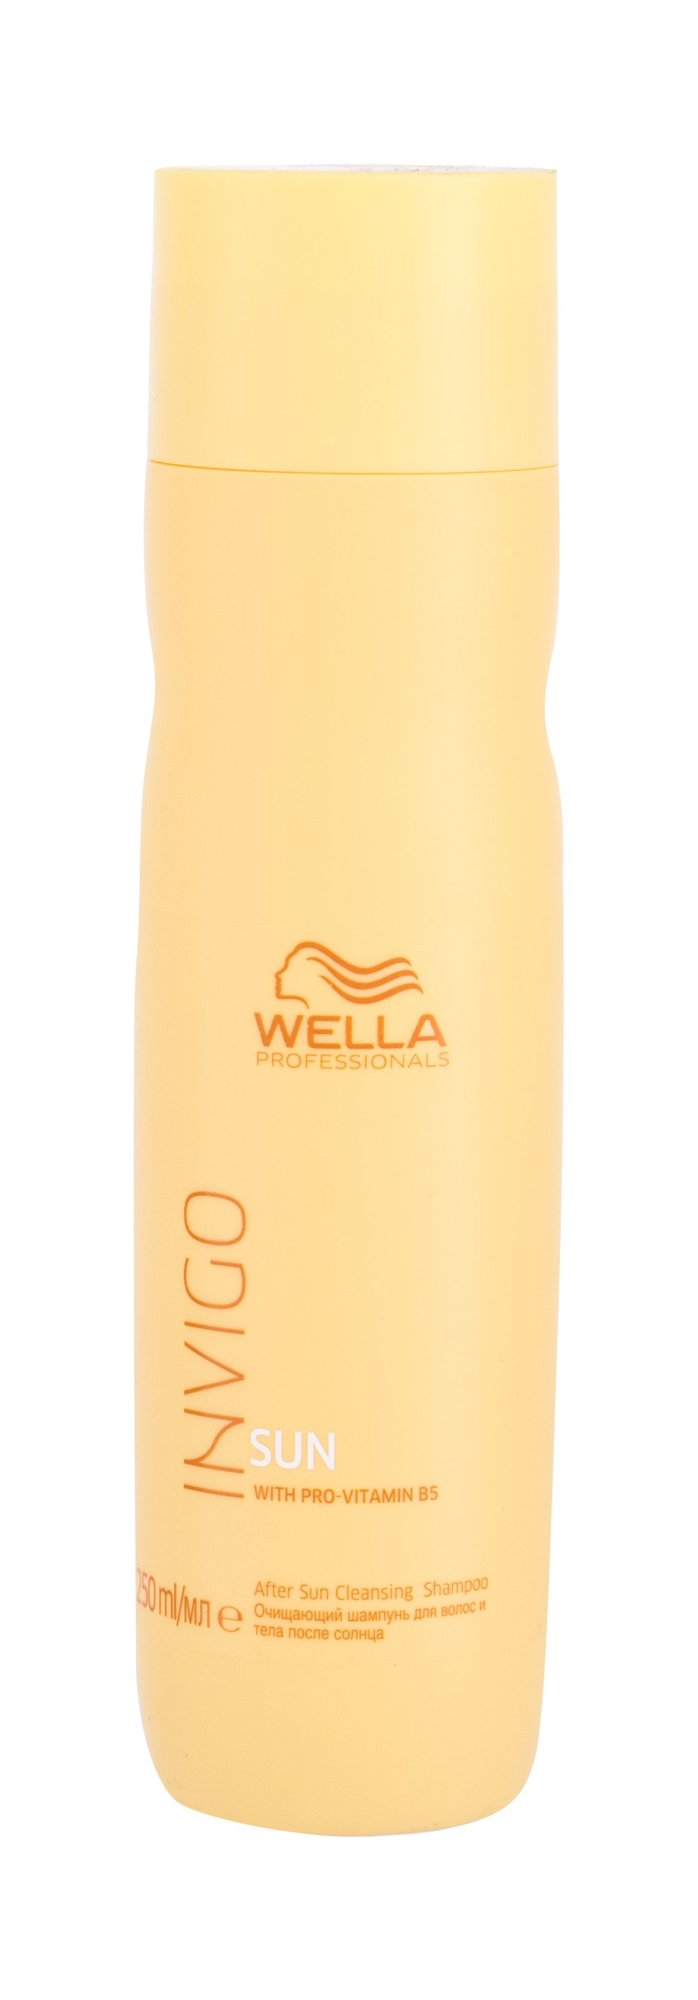 Wella Professionals Invigo Sun, Sampon 250ml - After Sun Cleansing